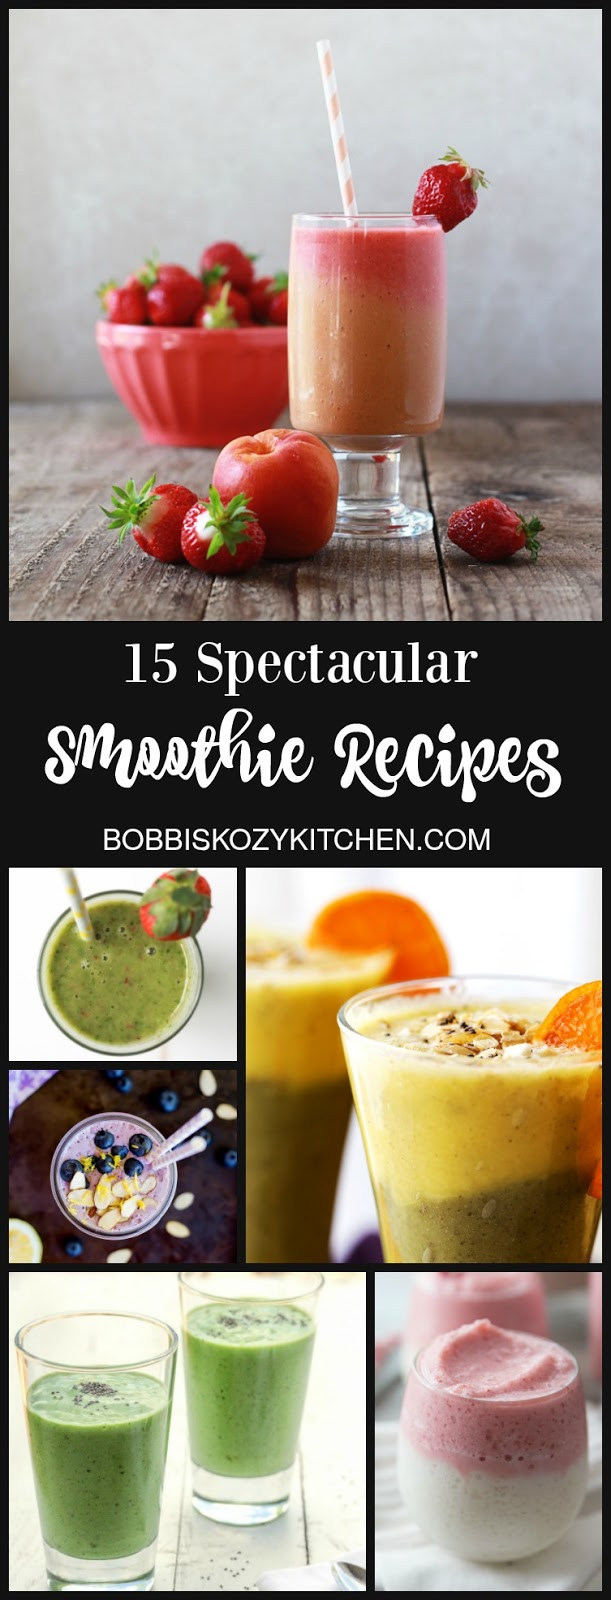 15 Spectacular Smoothie Recipes from www.bobbiskozykitchen.com